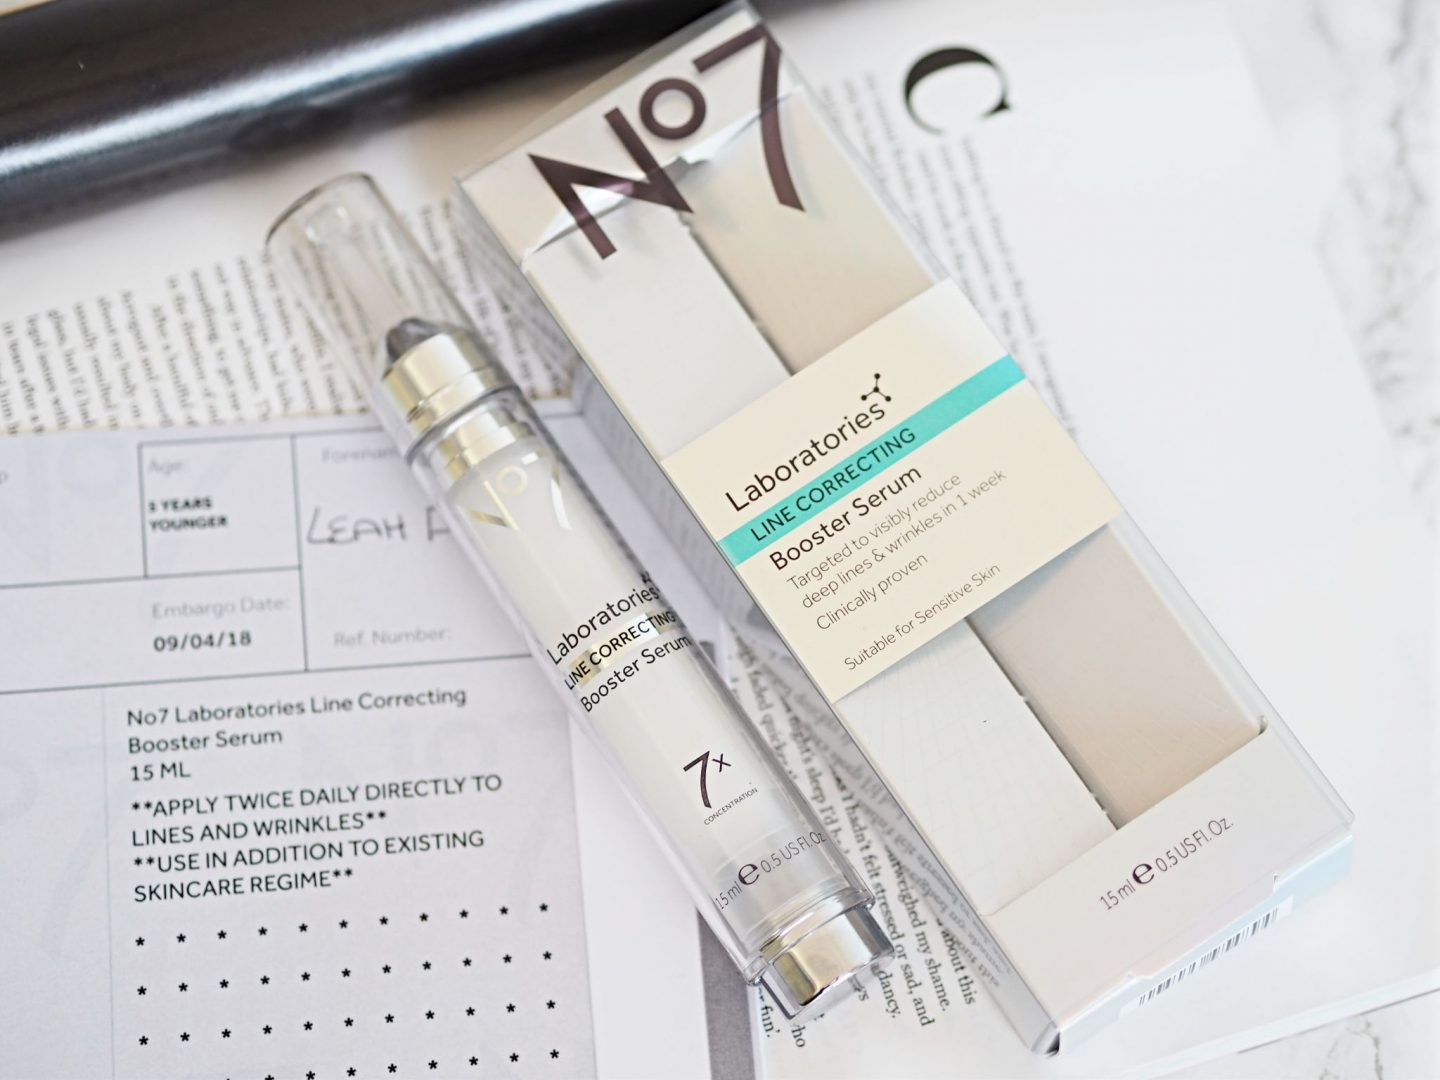 Boots No7 Line Correcting Booster Serum Review